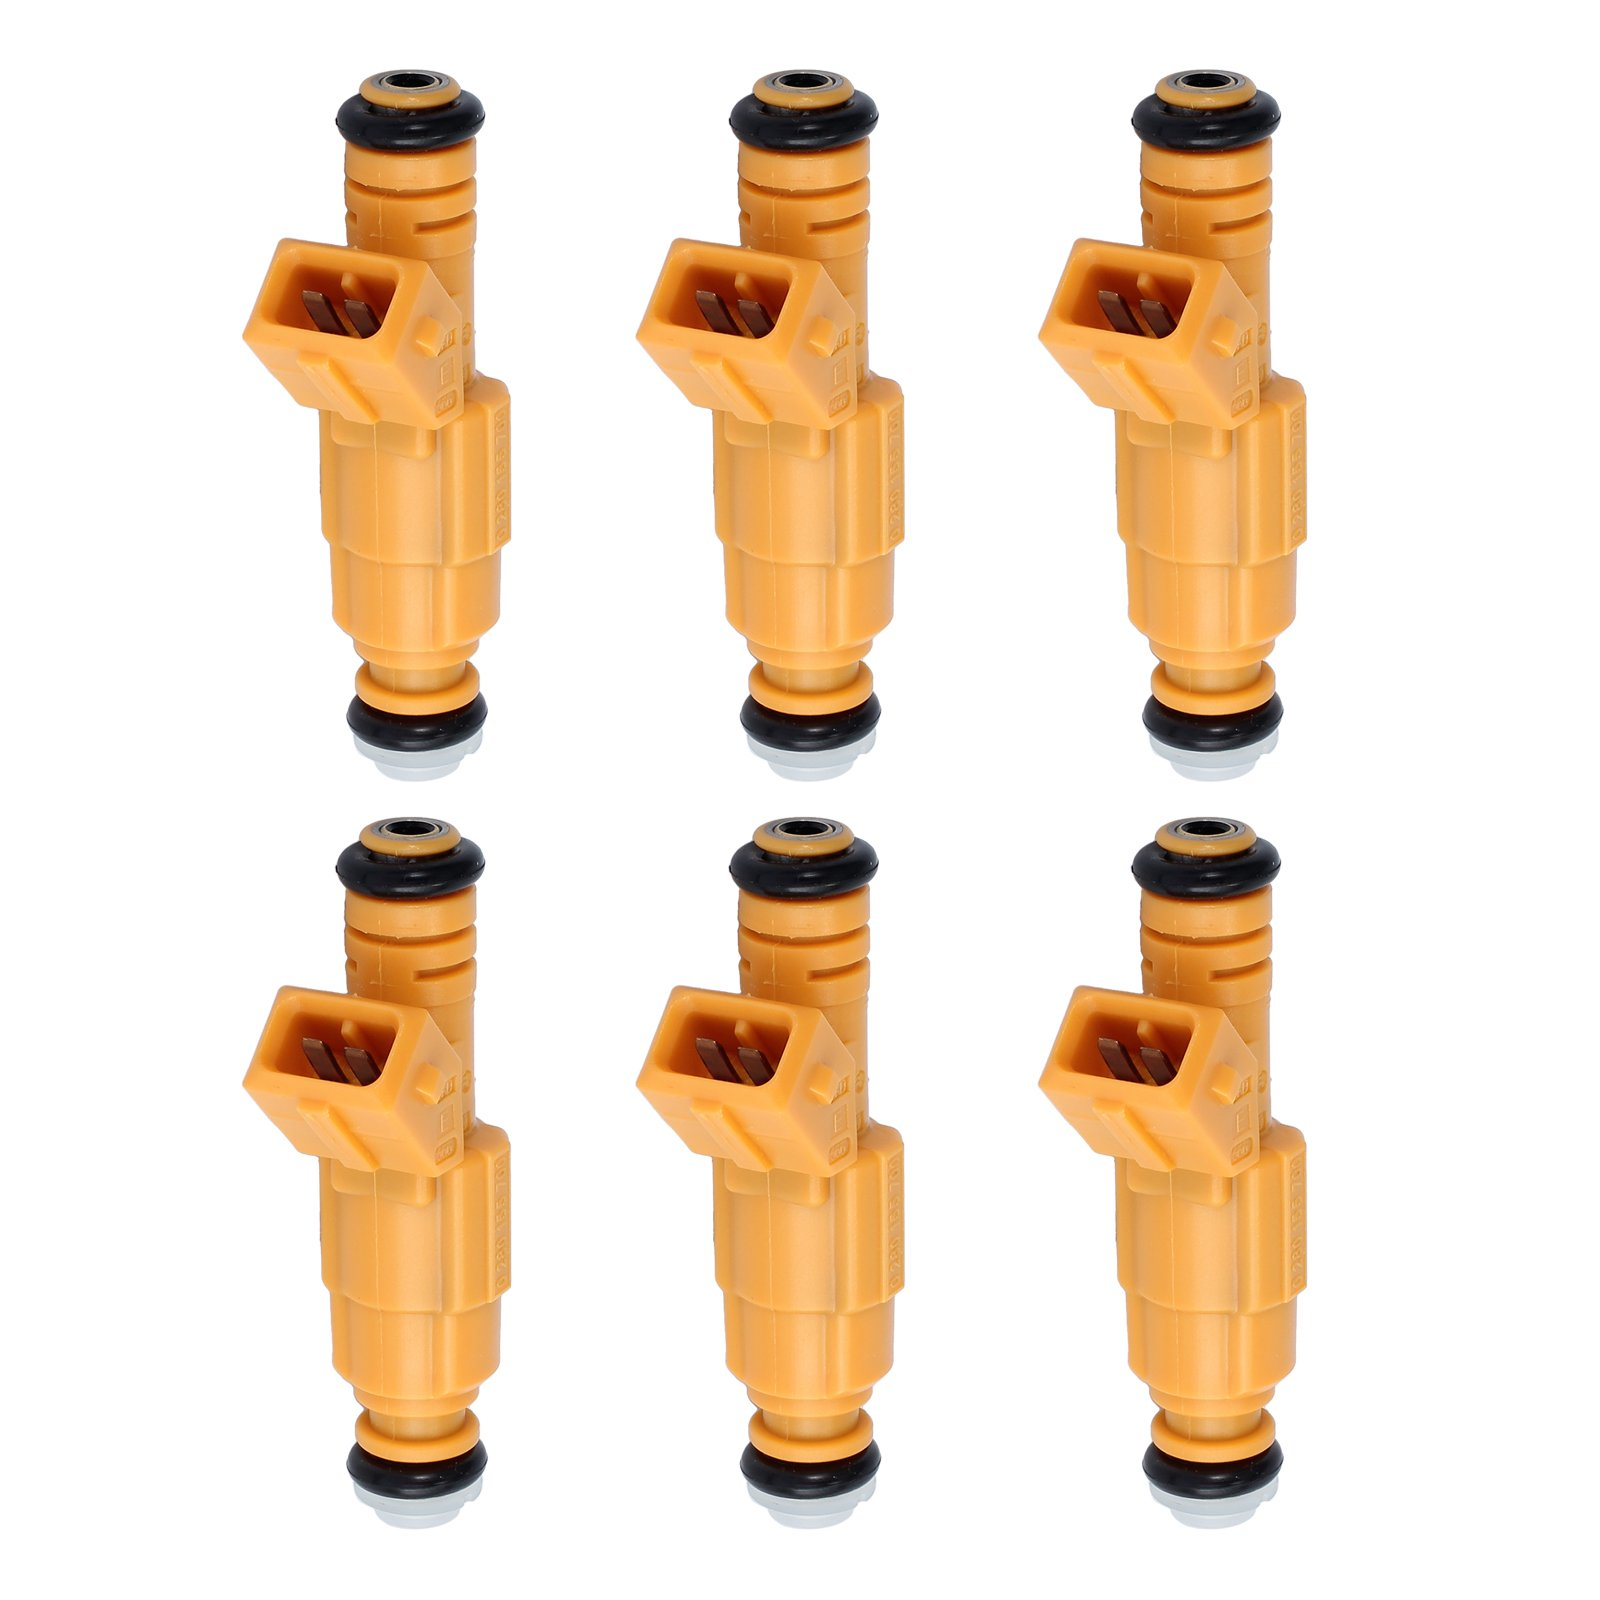 Neoteck 6pcs Fuel Injectors 4Hole For Jeep 87-98 4.0L Replace 0280155710 0280155700